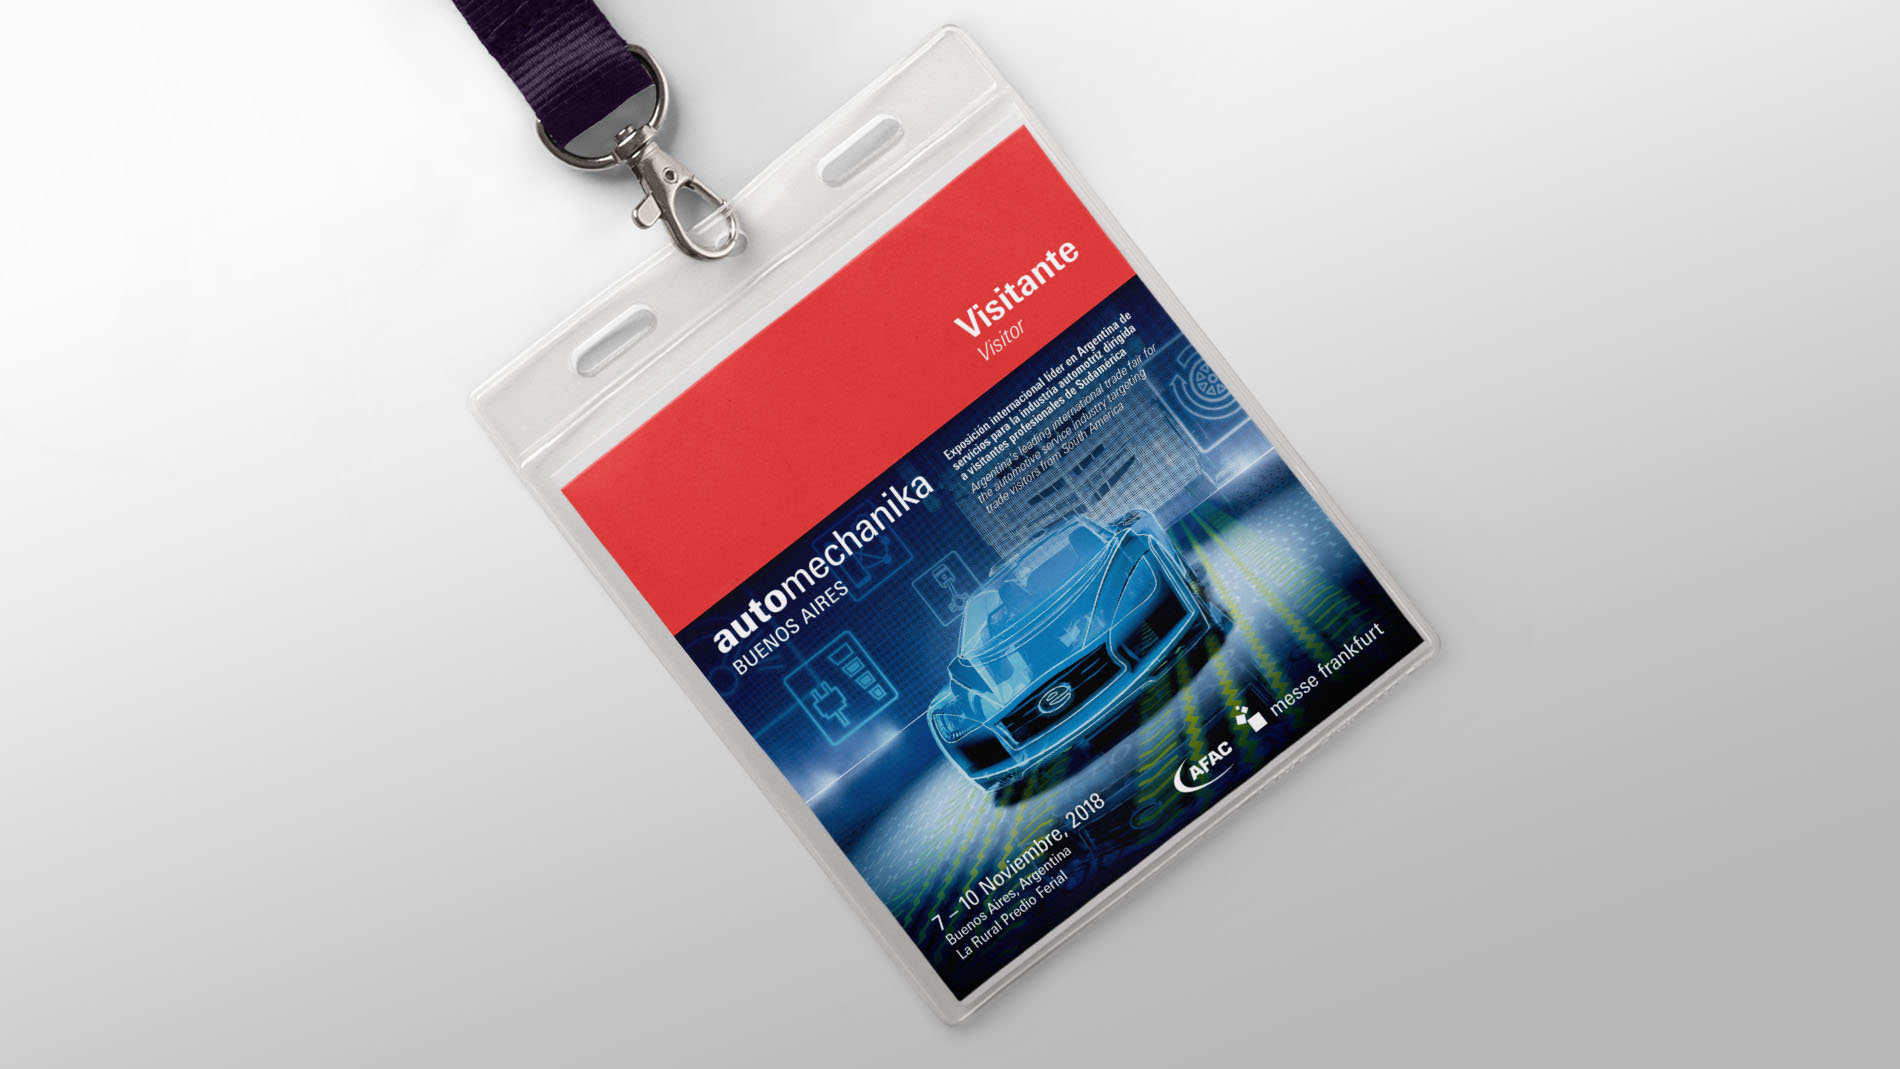 Automechanika Buenos Aires - visitor accreditation